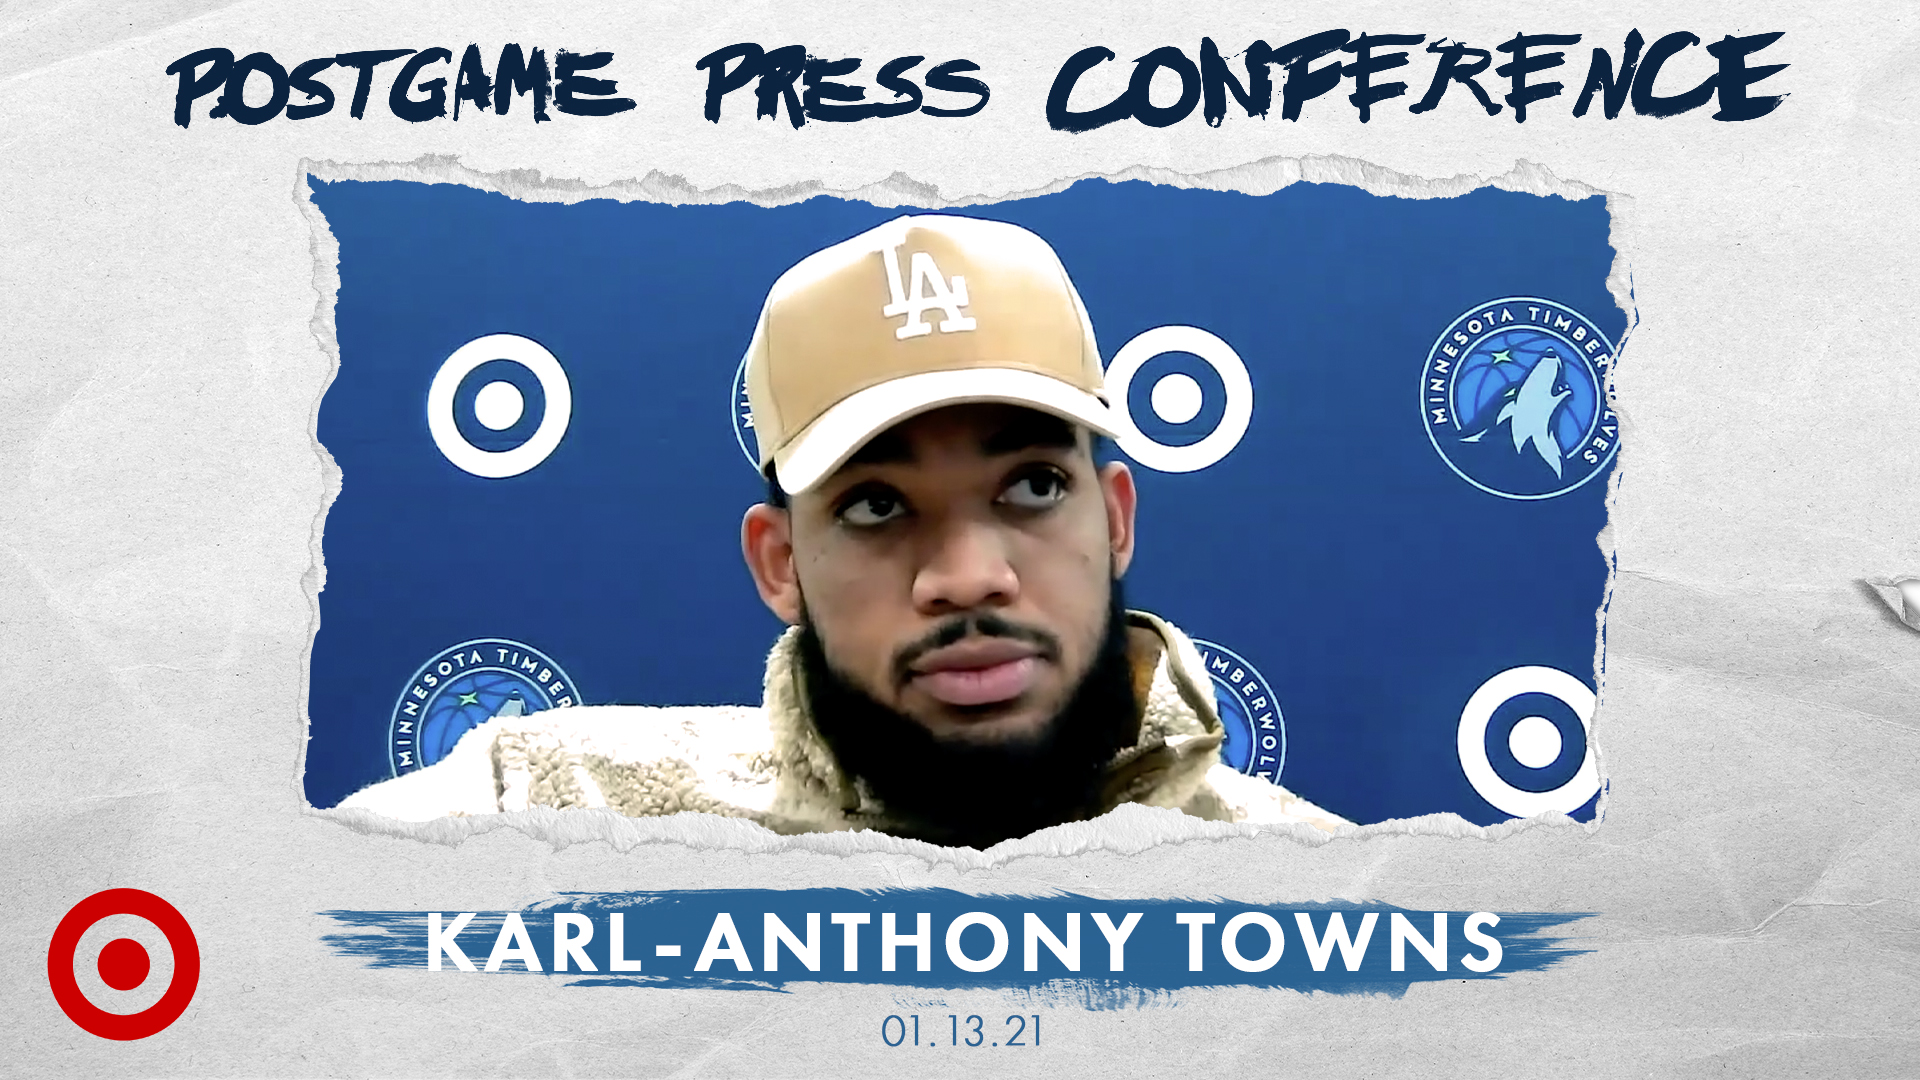 Karl-Anthony Towns Postgame Press Conference - January 13, 2021